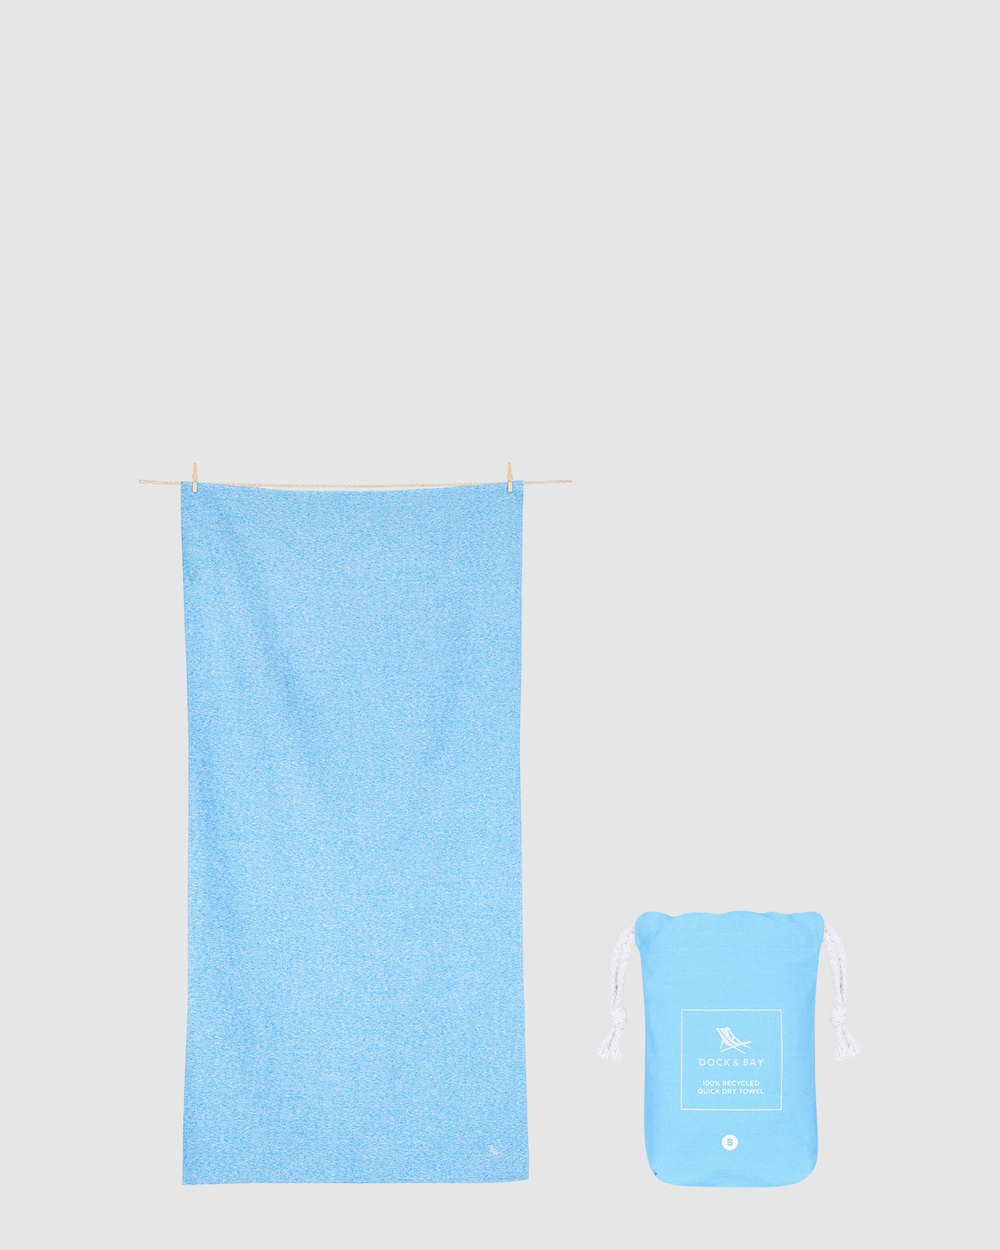 Dock & Bay Small Fitness Towel 100% Recycled Essential Collection Gym Yoga Blue